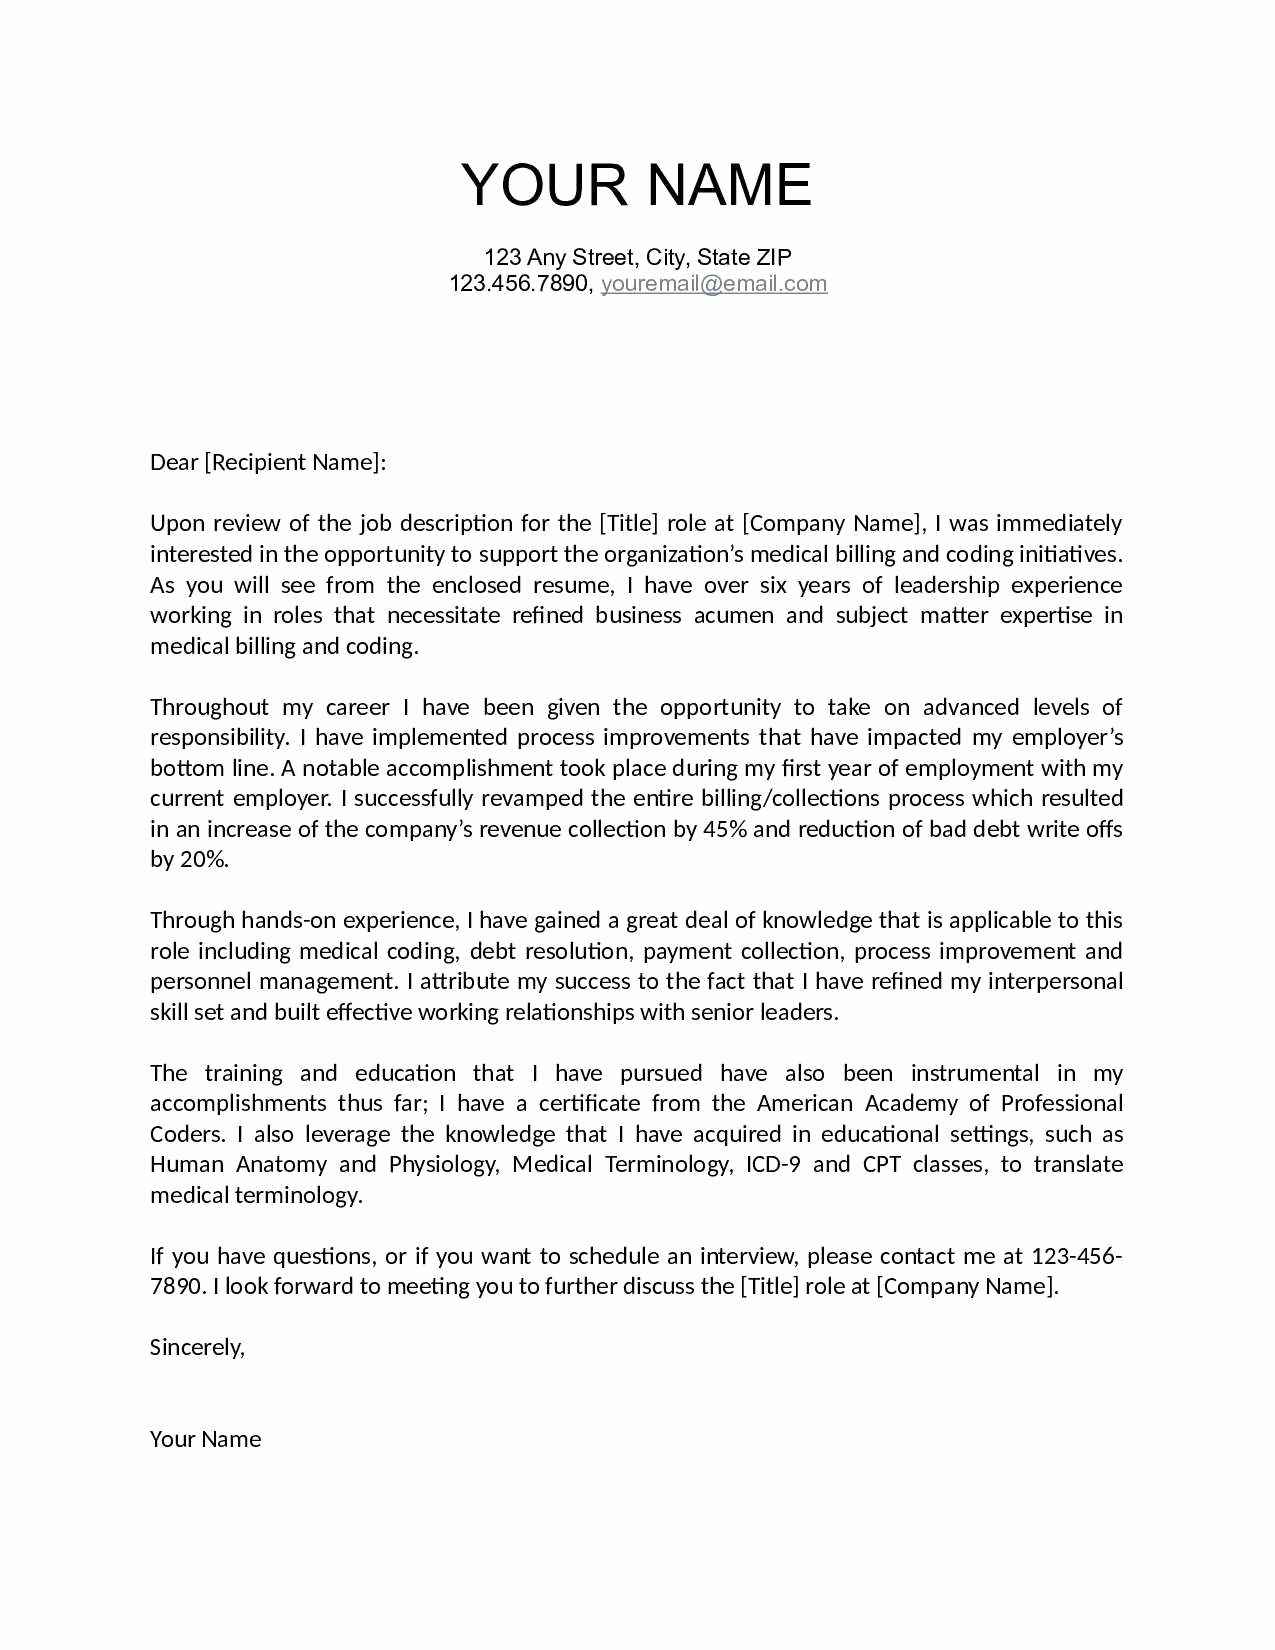 Survey Cover Letter Template - Teachers Resume Template Inspirational Early Childhood Education